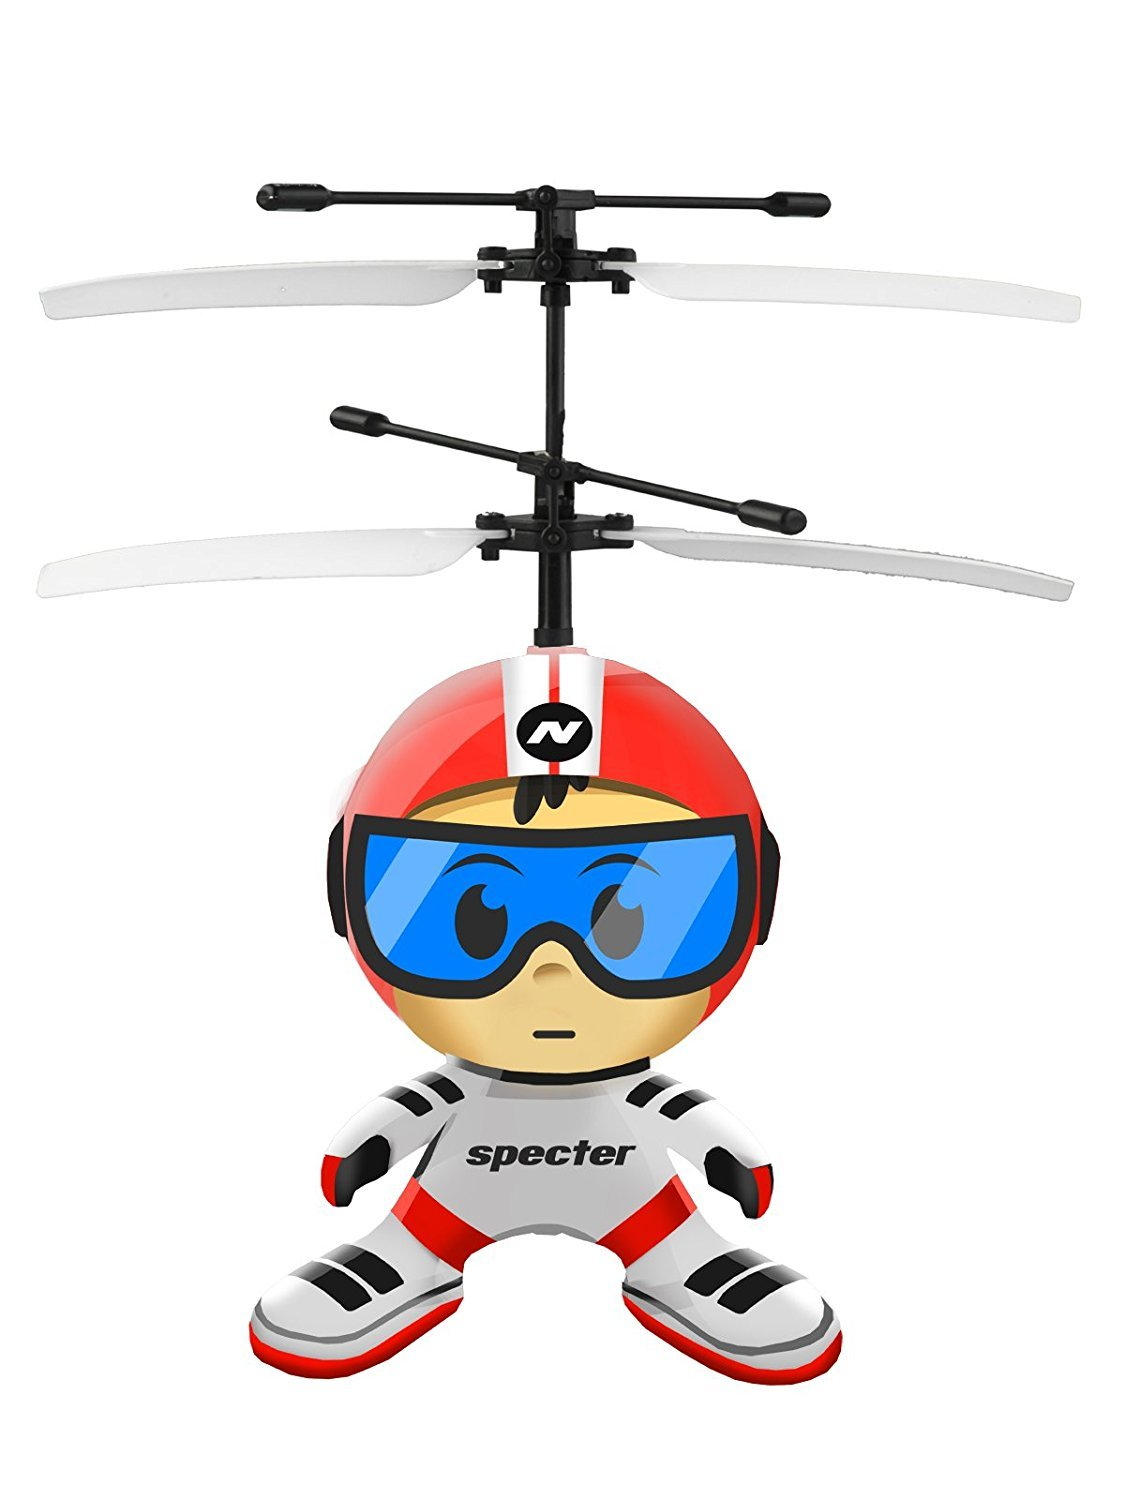 NINCO AIR SPECTER NH90106 FLYING ROBOT REMOTE CONTOL DRONE RC ...